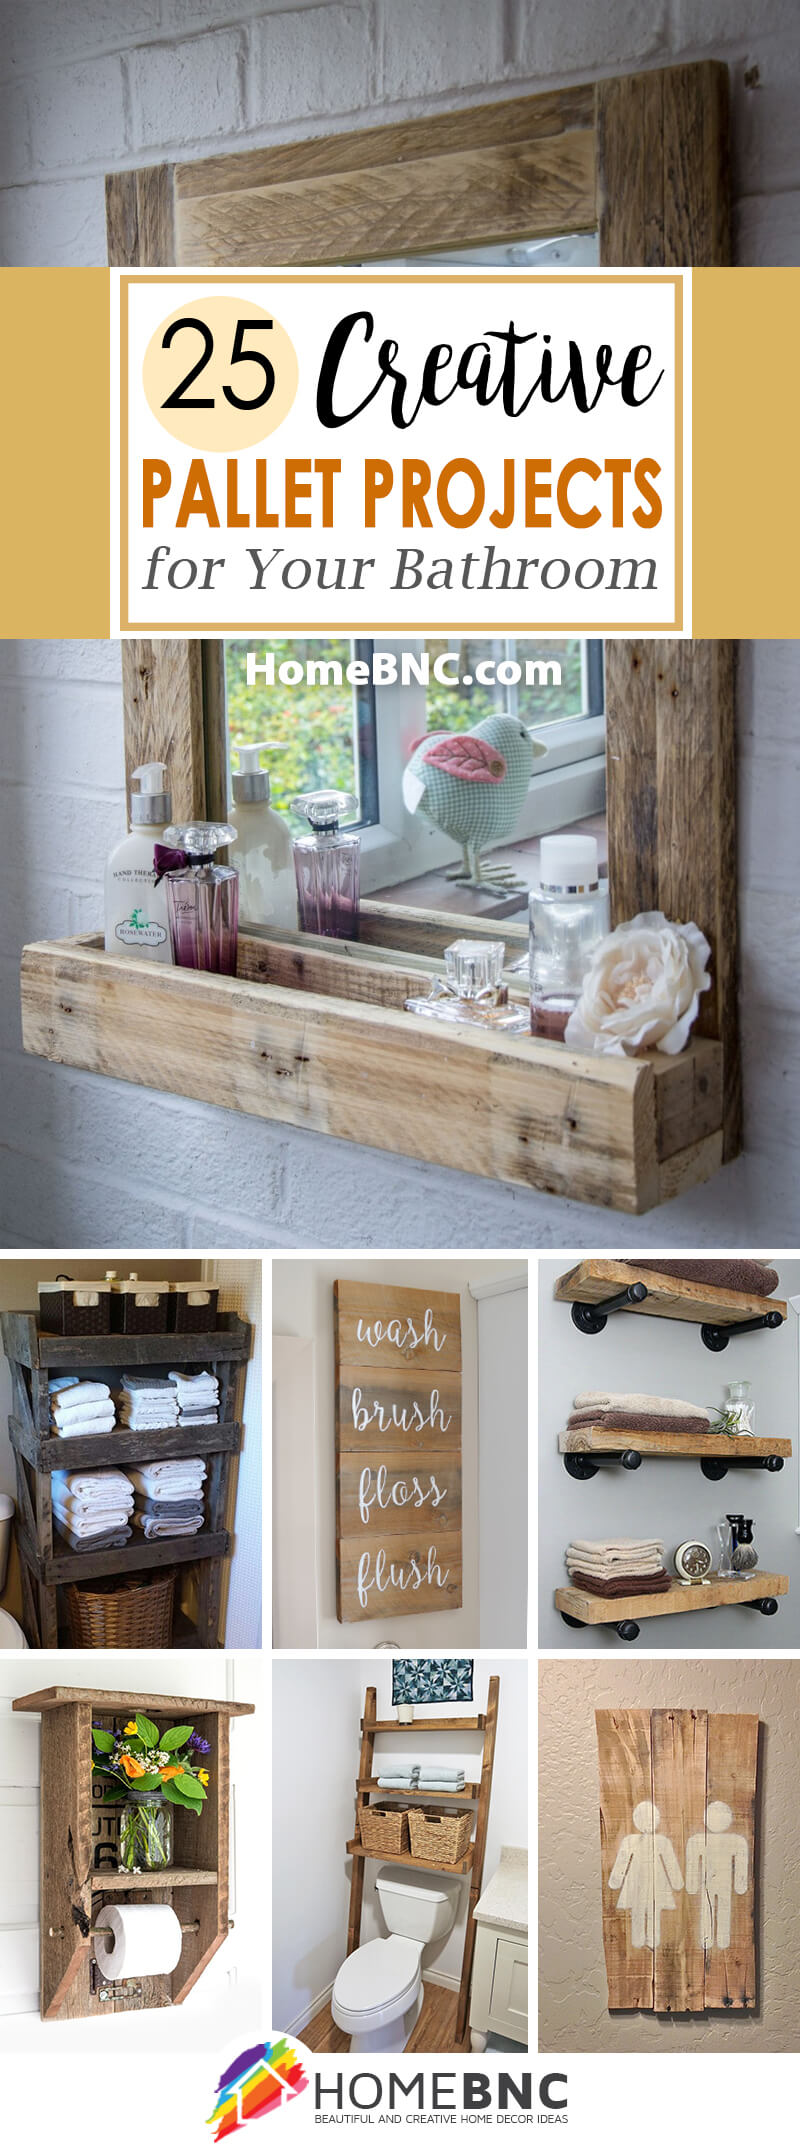 5 Best Bathroom Pallet Projects (Ideas and Designs) for 5